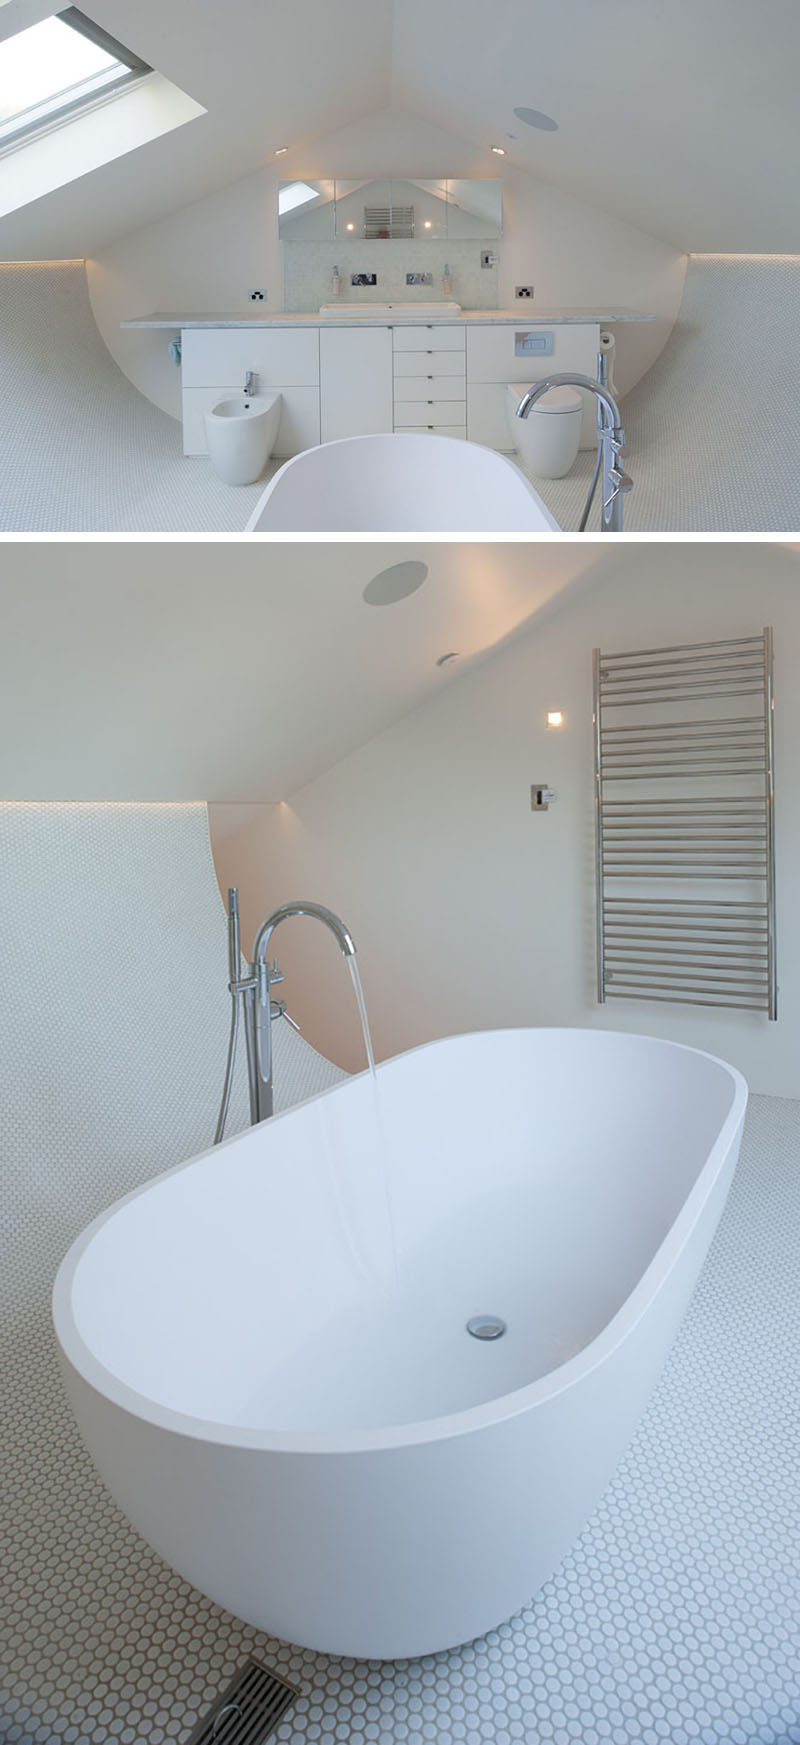 This all white attic has a curved tiled floor with hidden lighting, making the bath the focal point of the bathroom.